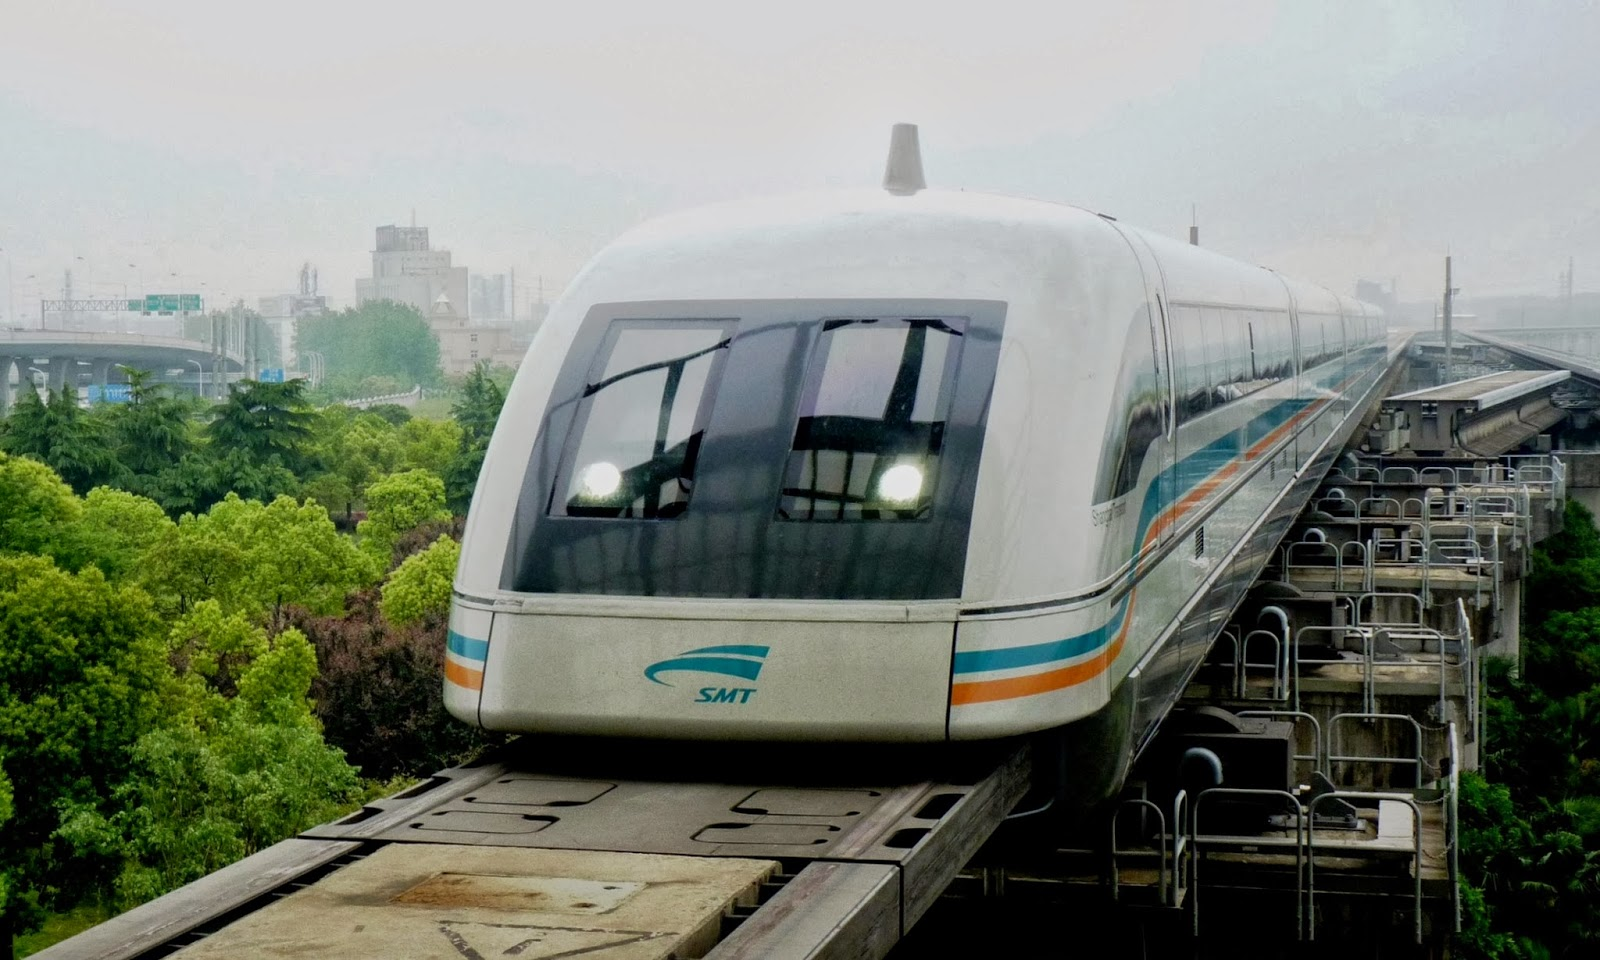 Shanghai Maglev Train HD wallpapers | HD Wallpapers (High Definition ...